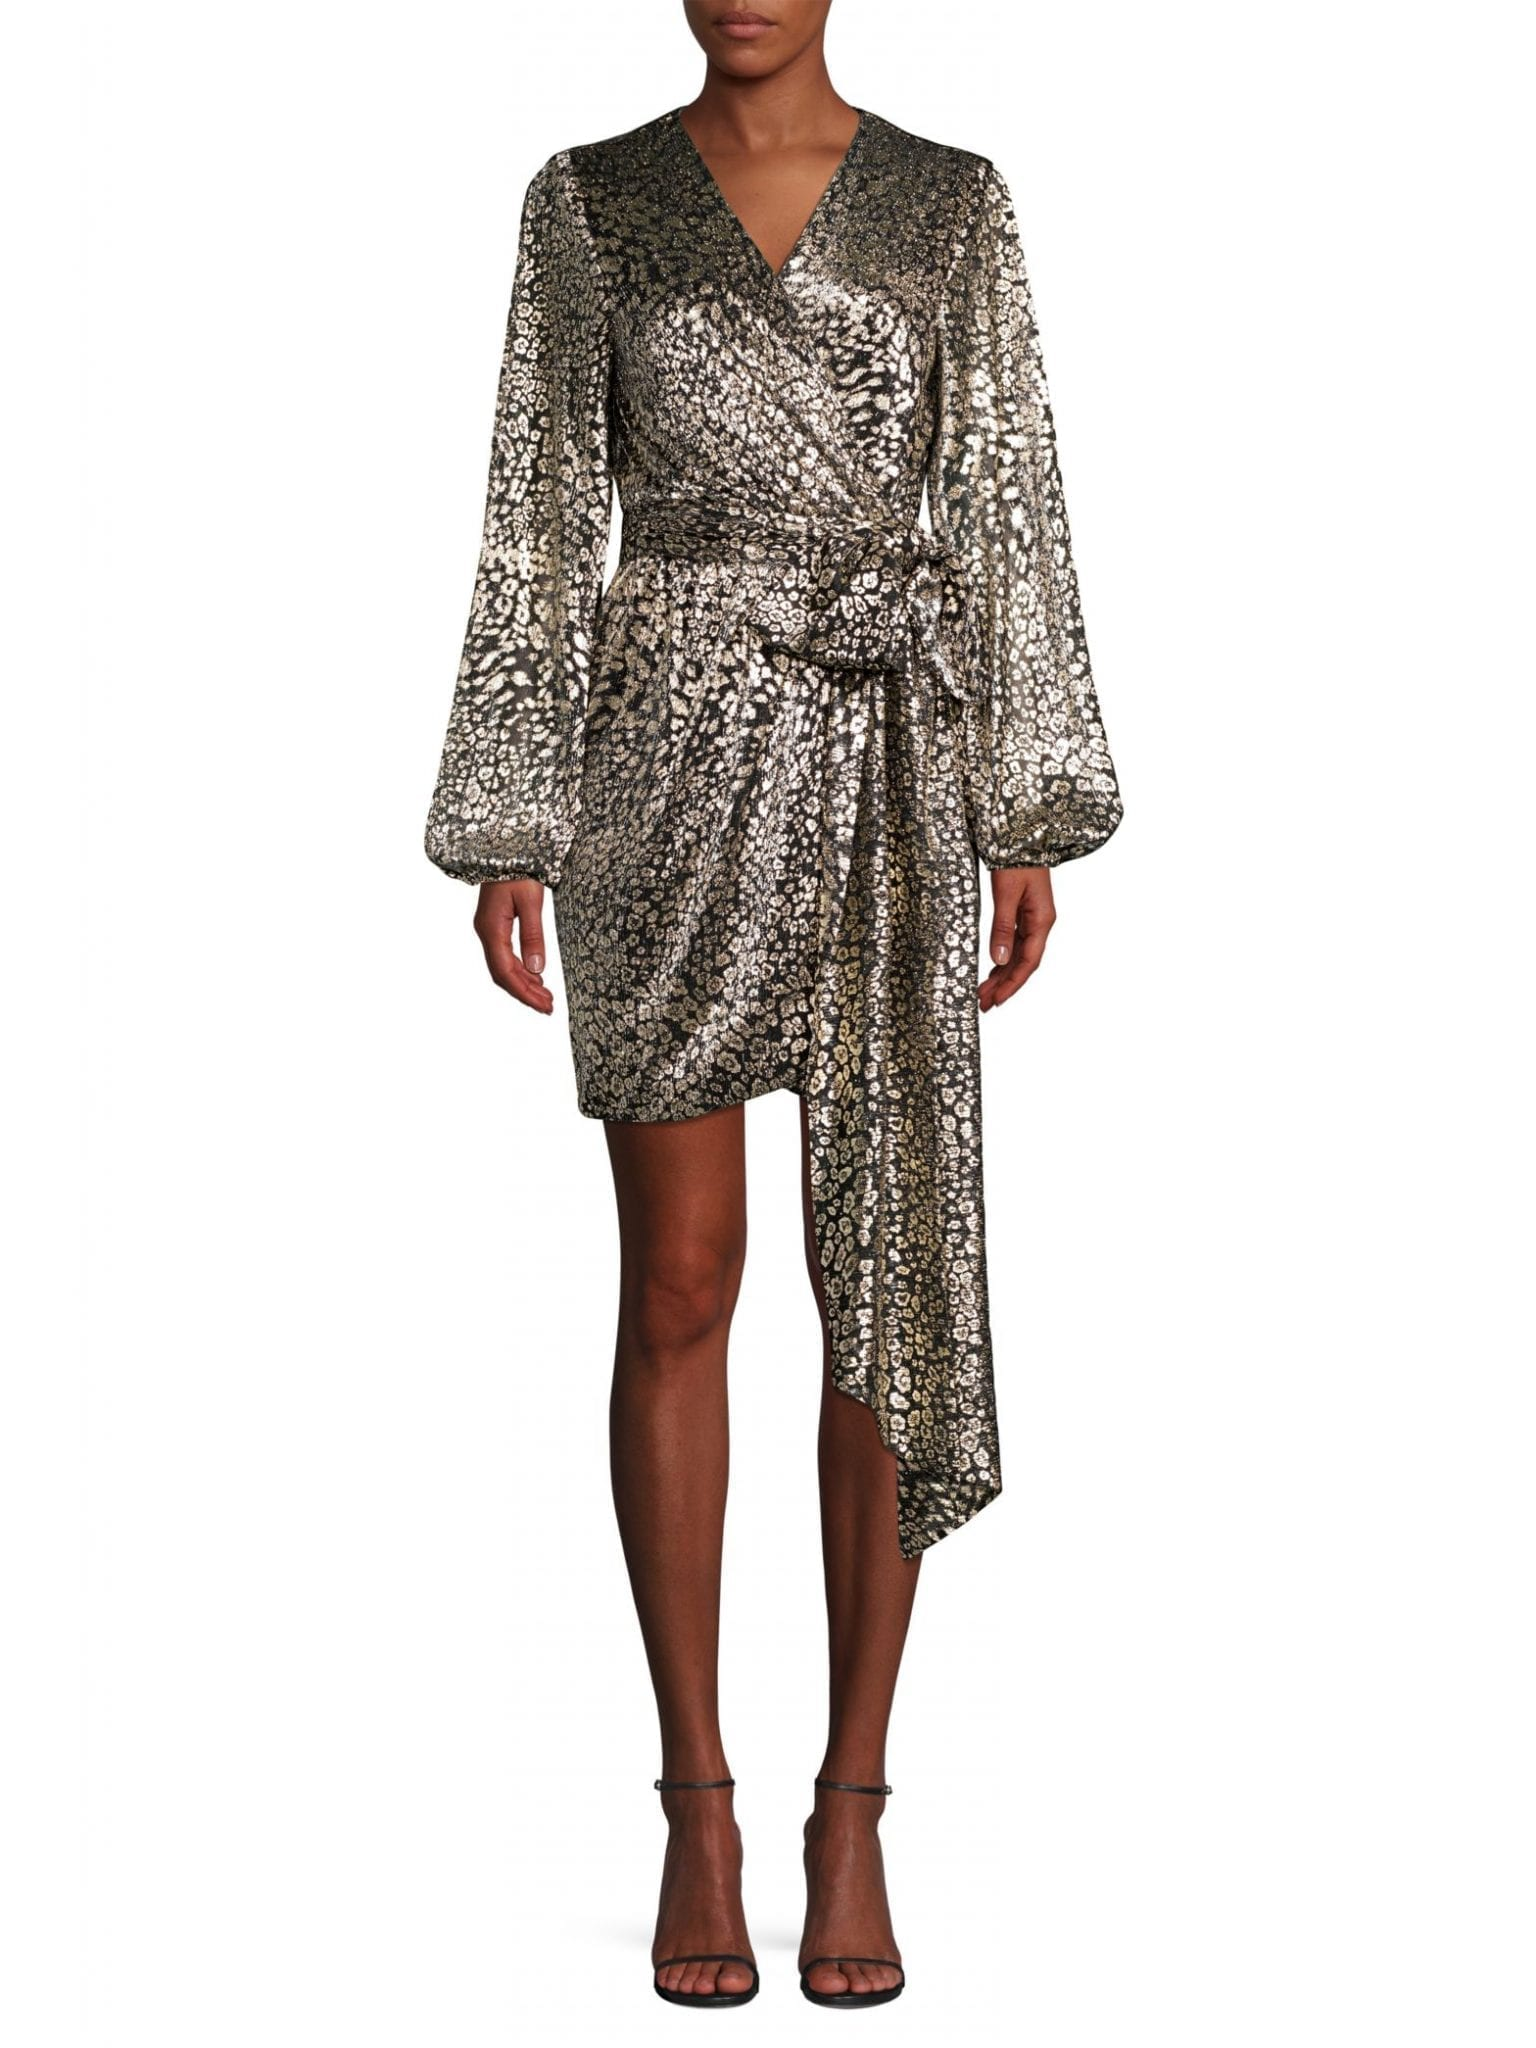 REBECCA VALLANCE Vienna Metallic Leopard Print Mini Dress